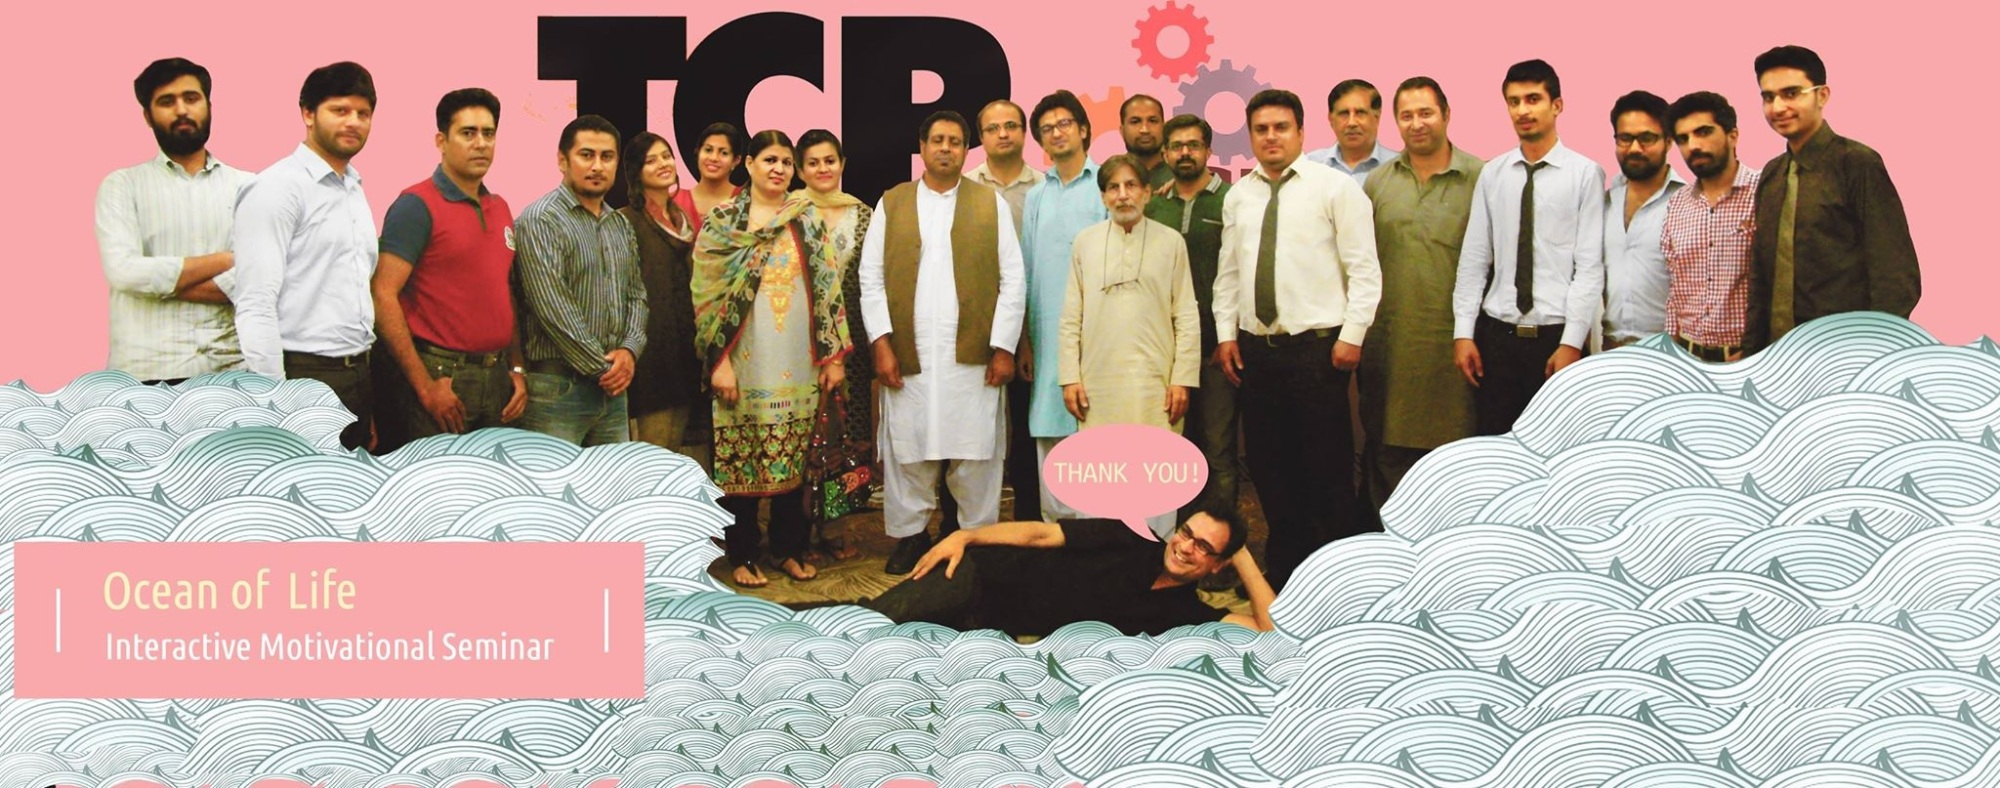 The Career Portal. Ocean of Life, TCP seminar Lahore